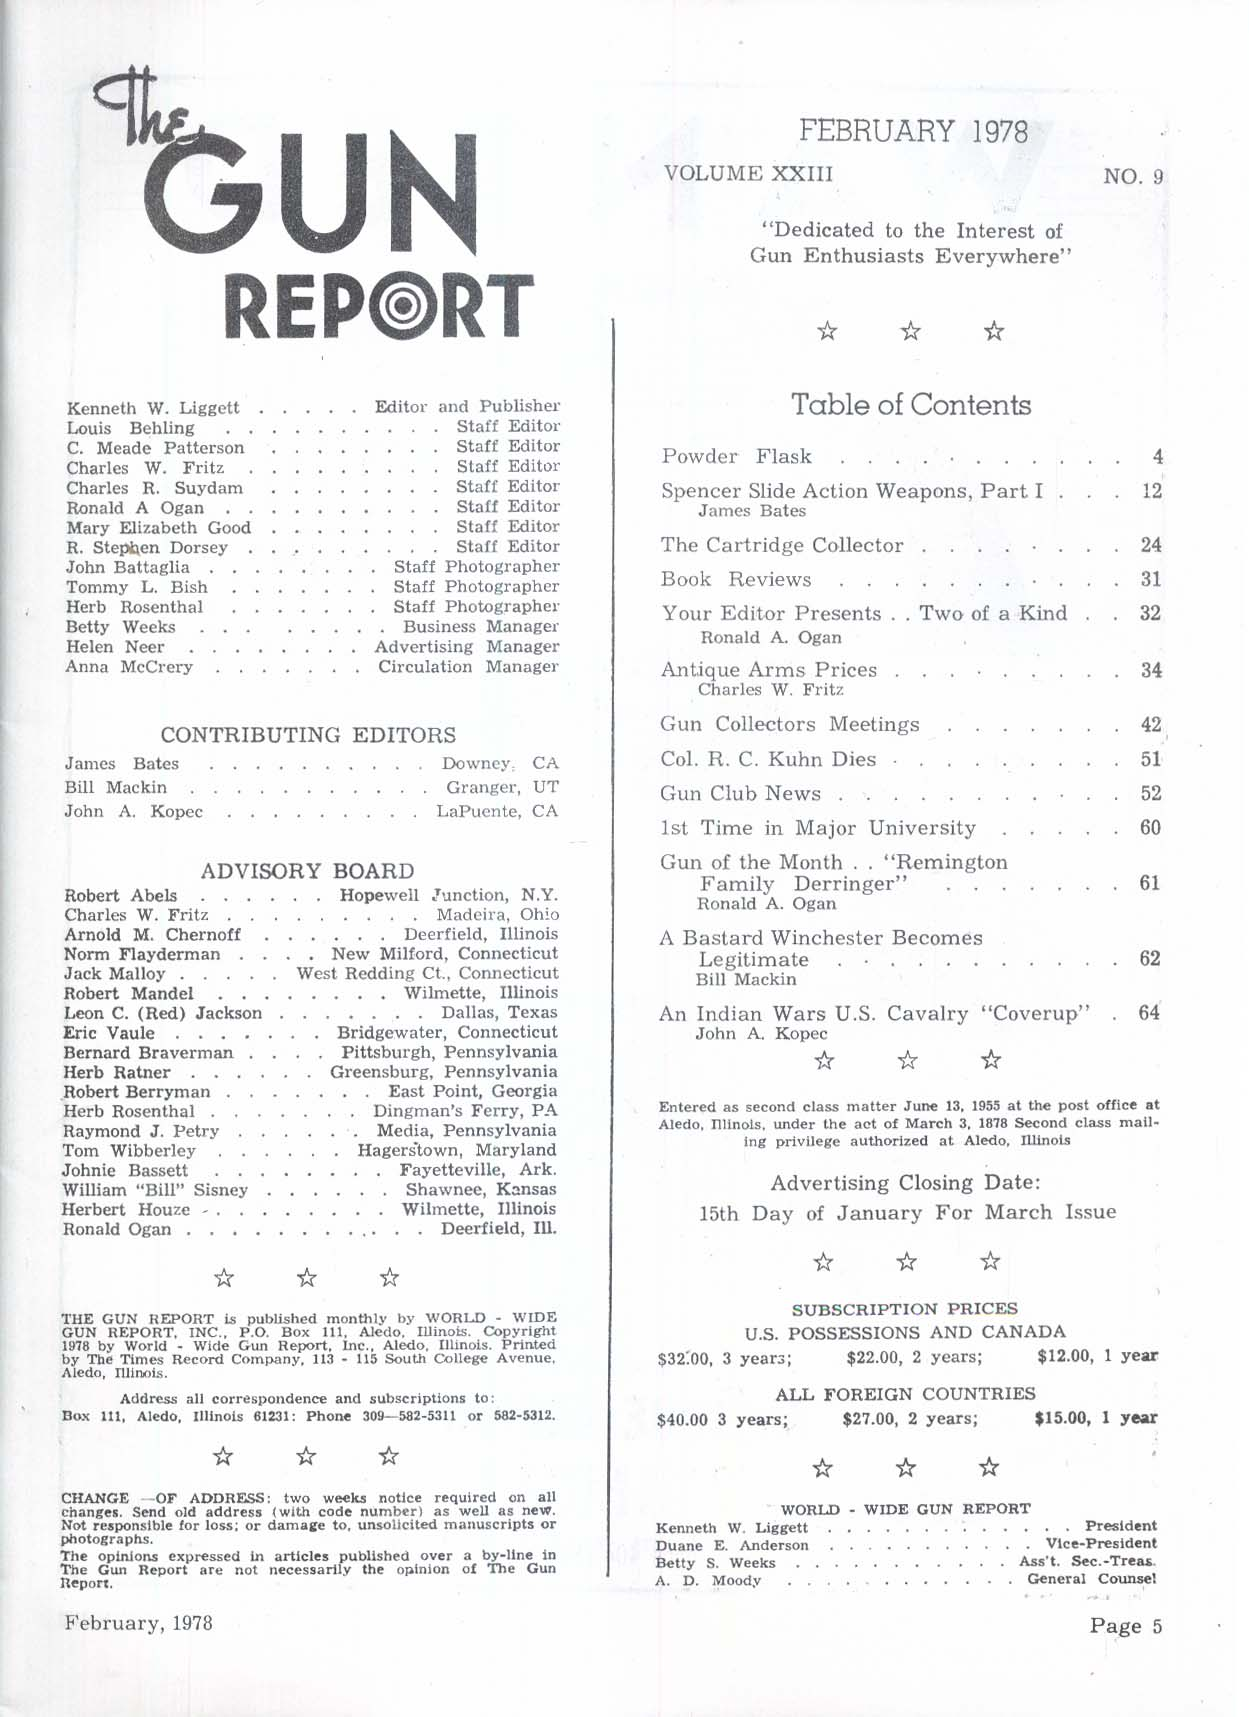 GUN REPORT Spencer Slide Action Weapons Colonel R C Kuhn Remington 2 1978